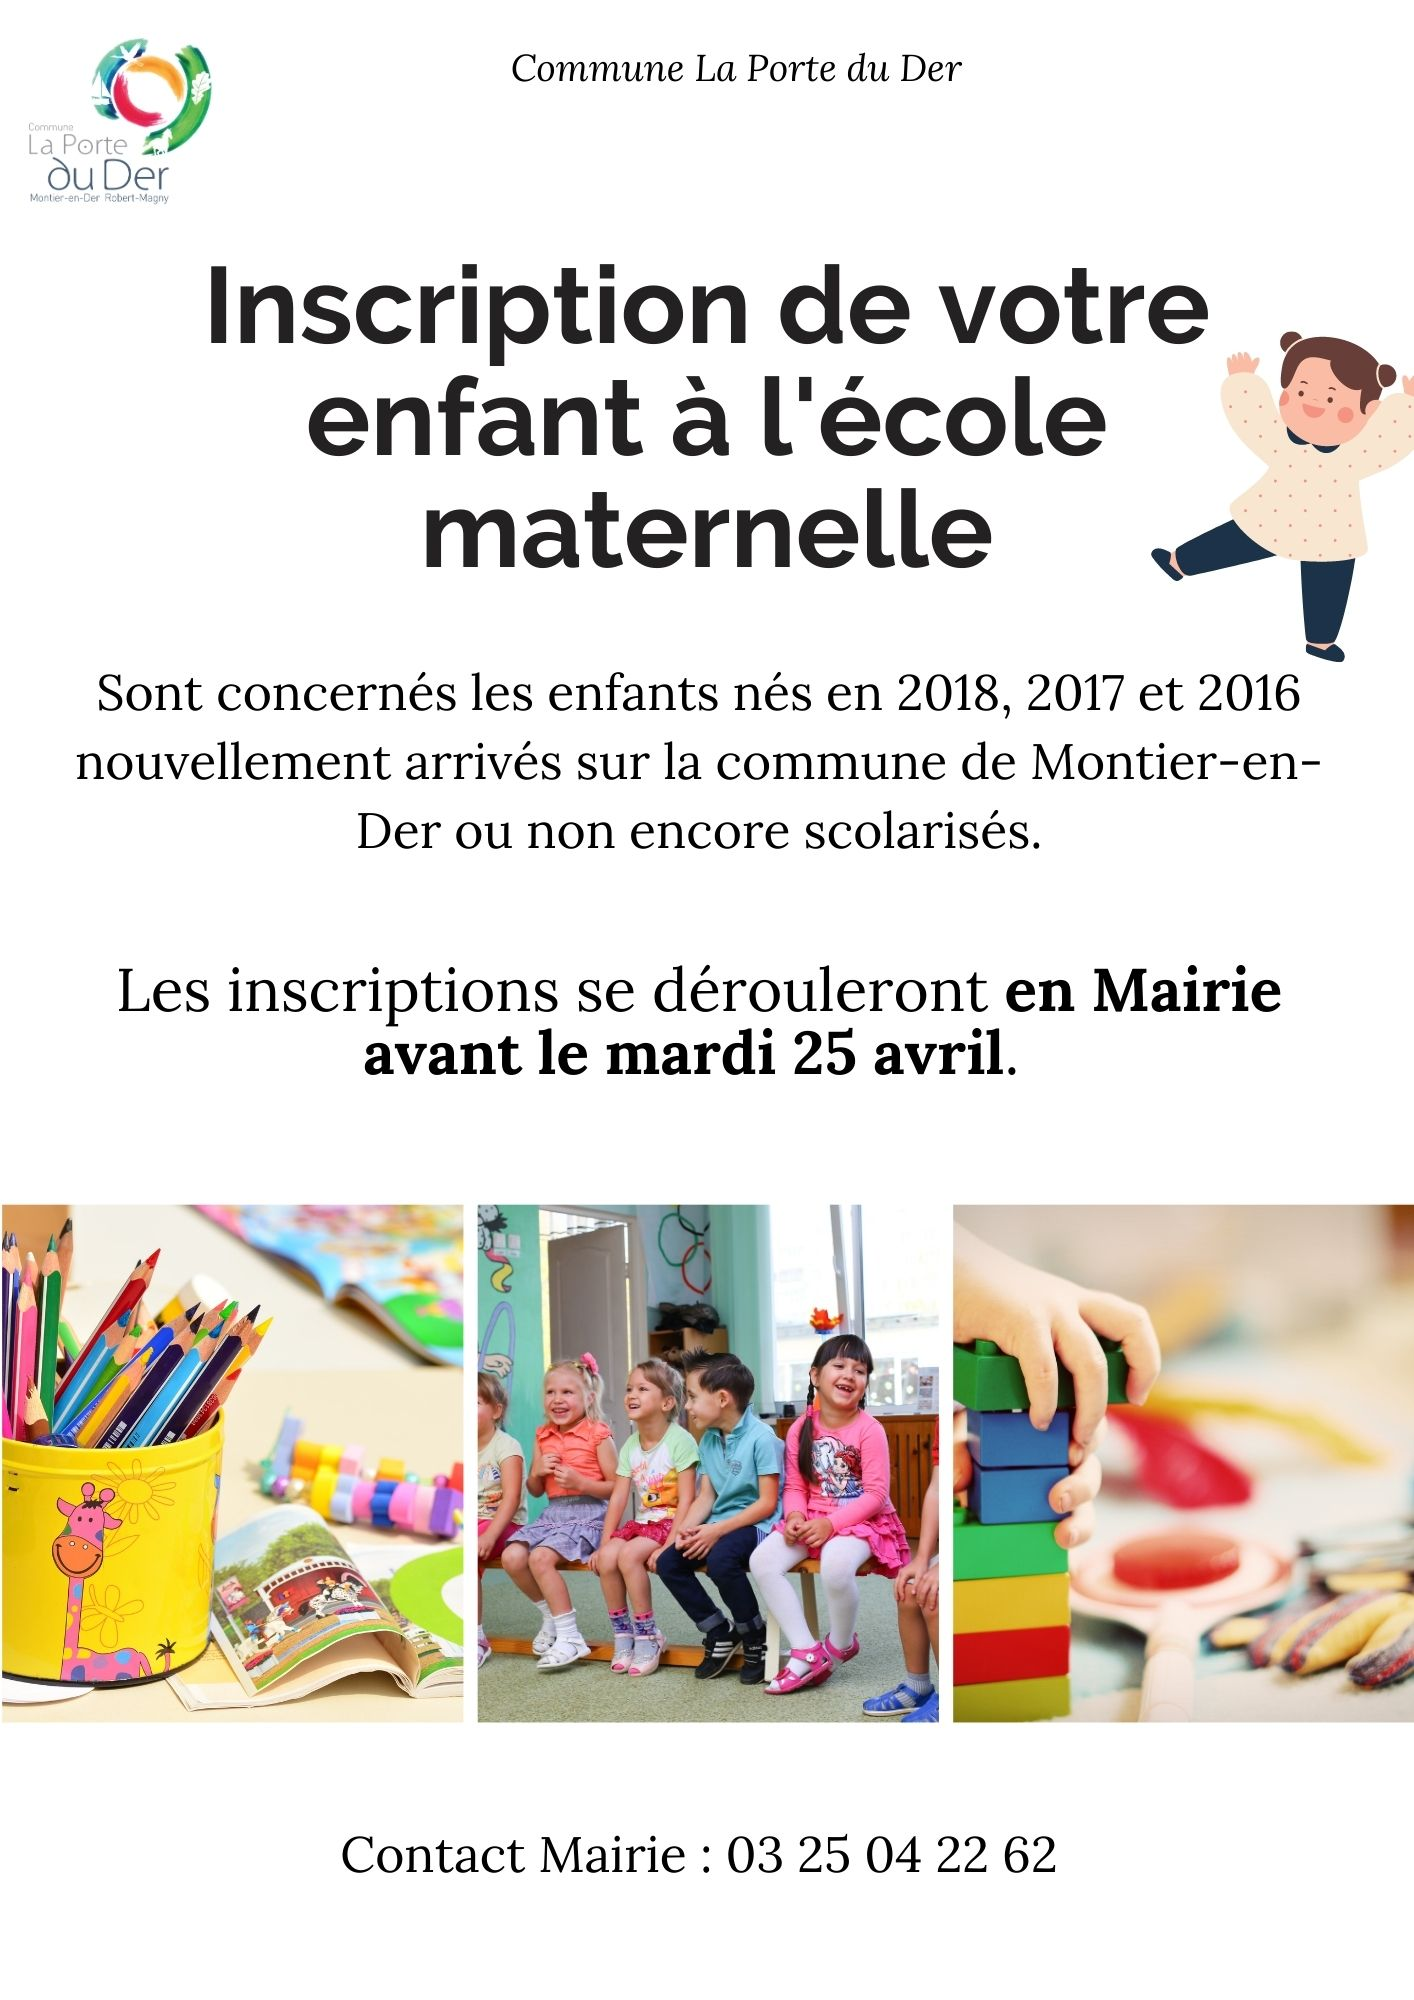 INSCRIPTION MATERNELLE